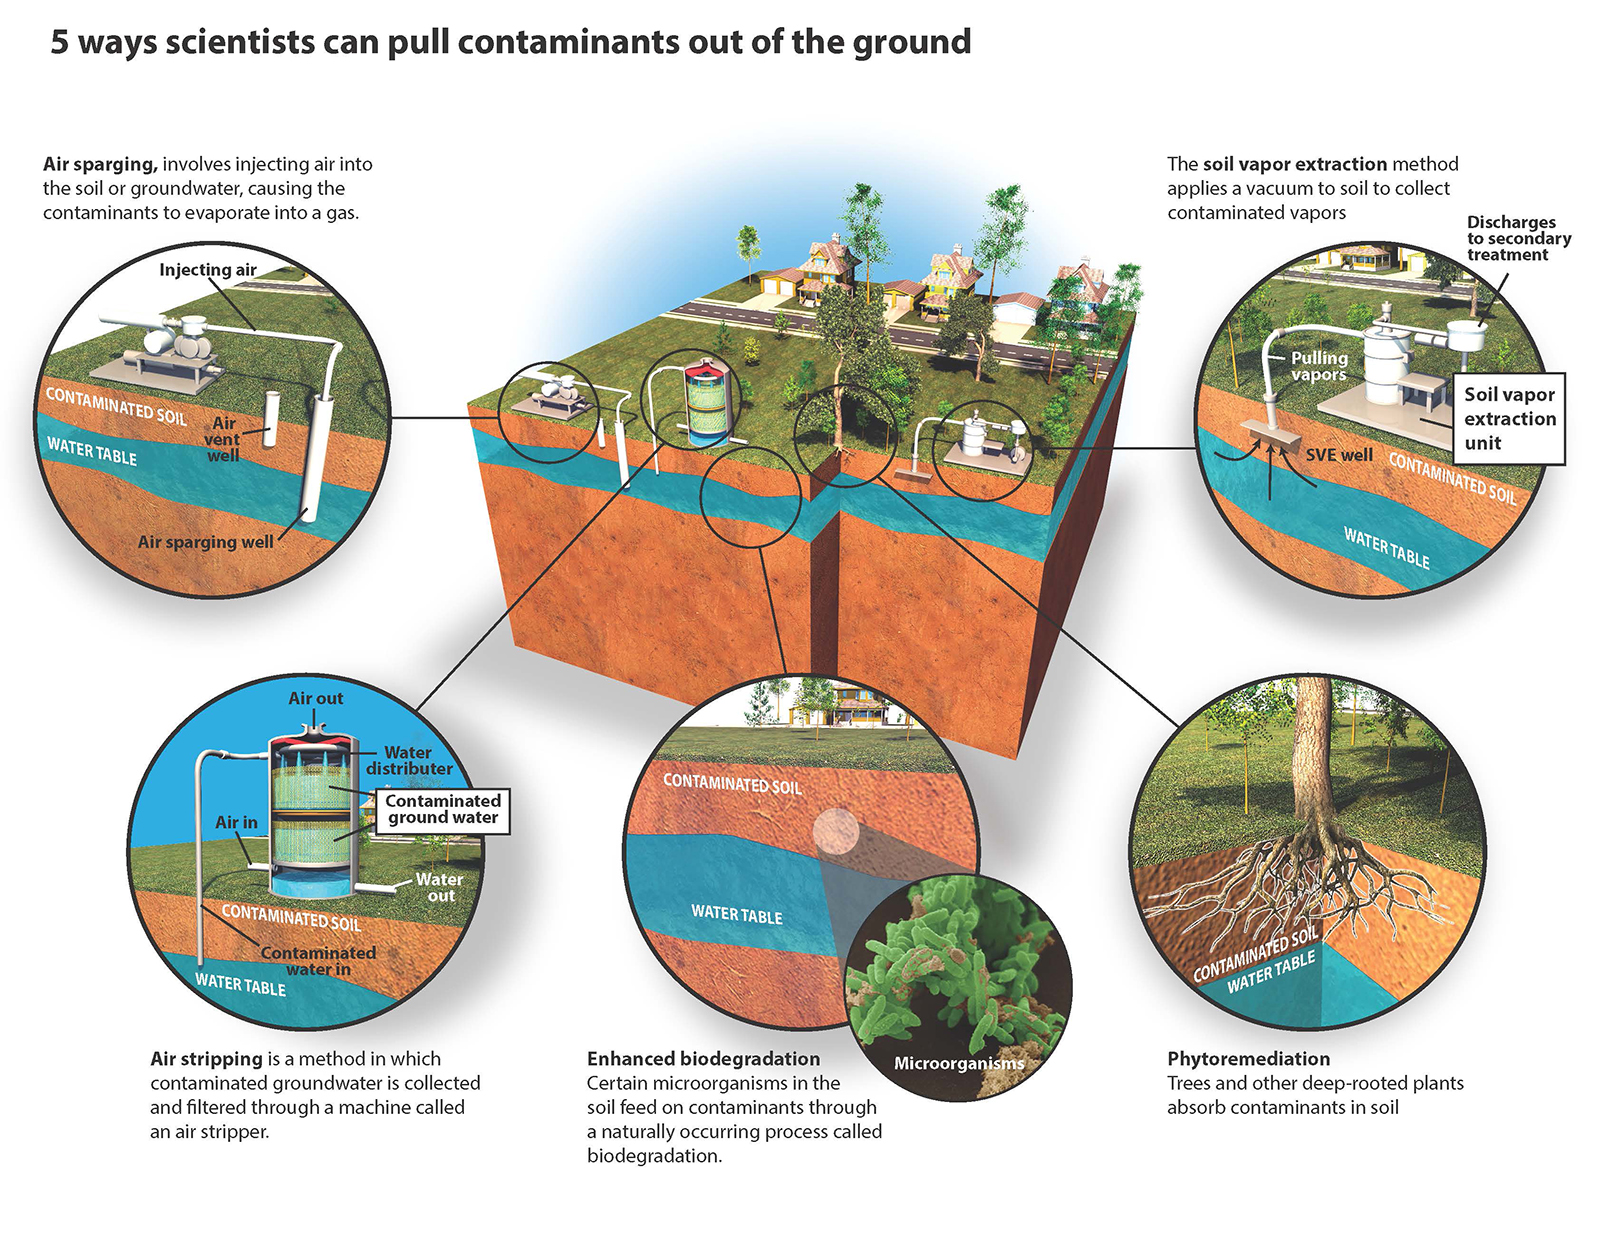 Several different remediation processes are available to clean up soil, varying in efficiency, cost and sustainability for specific site conditions.